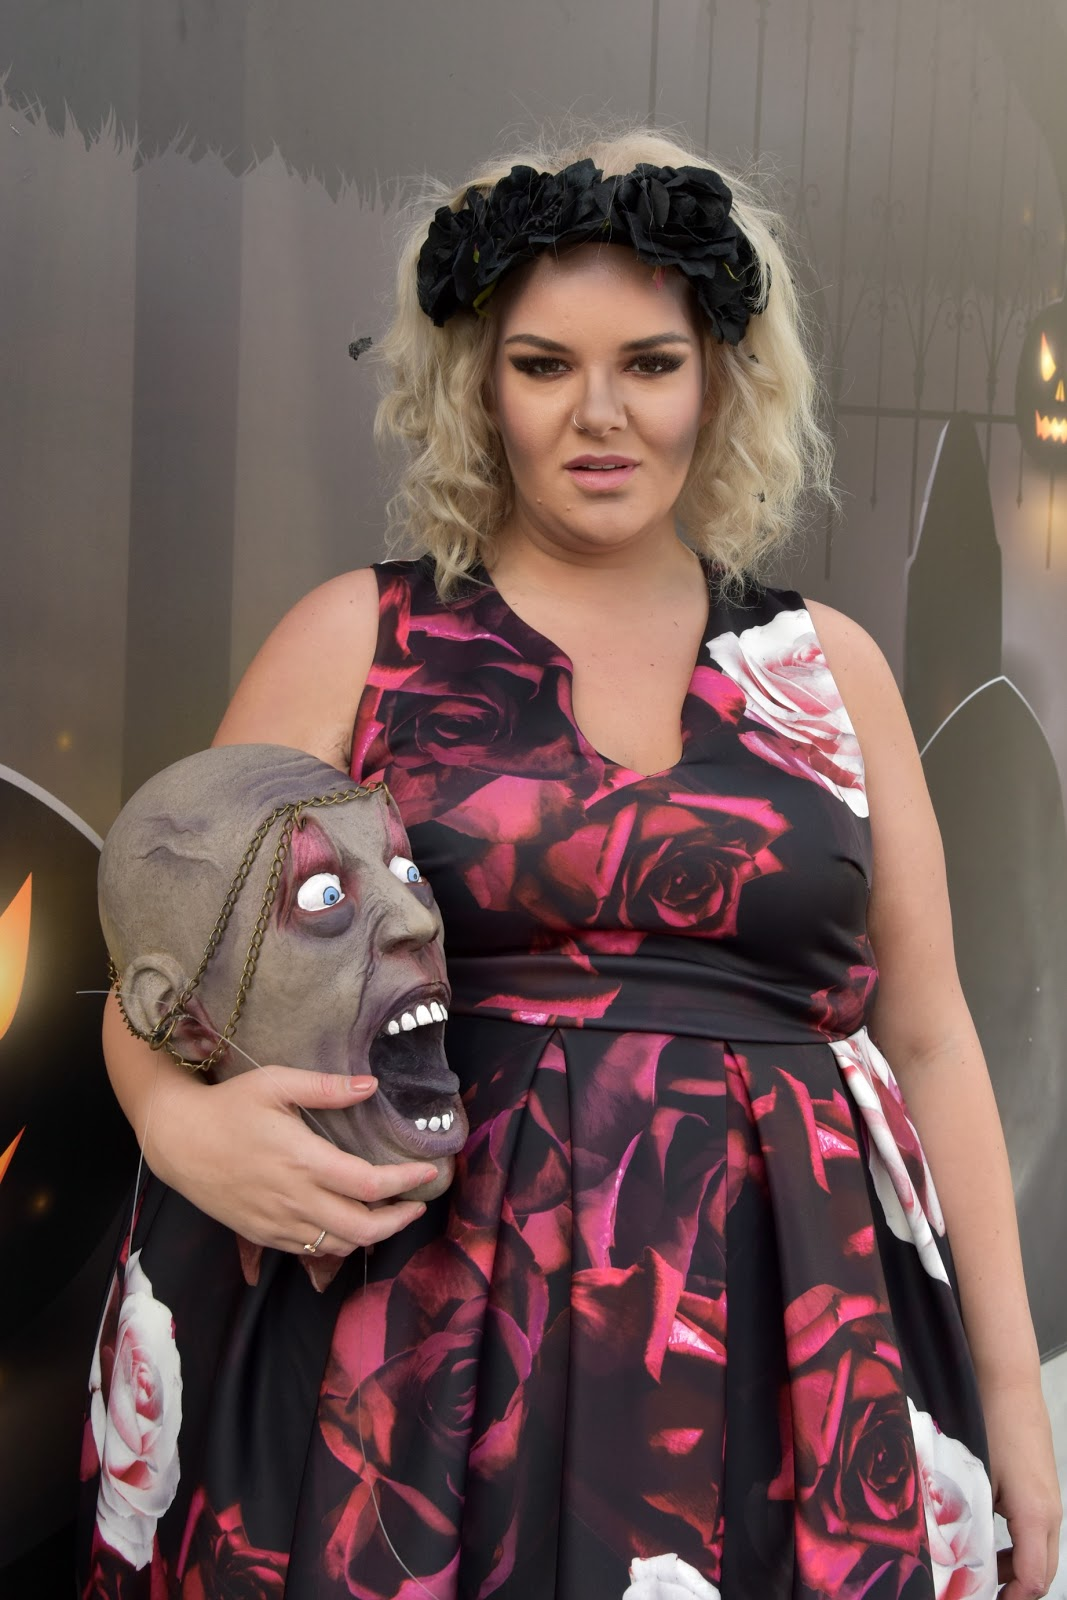 Floral Skull Plus Size Halloween Outfit with Yours Clothing at The Alnwick Garden